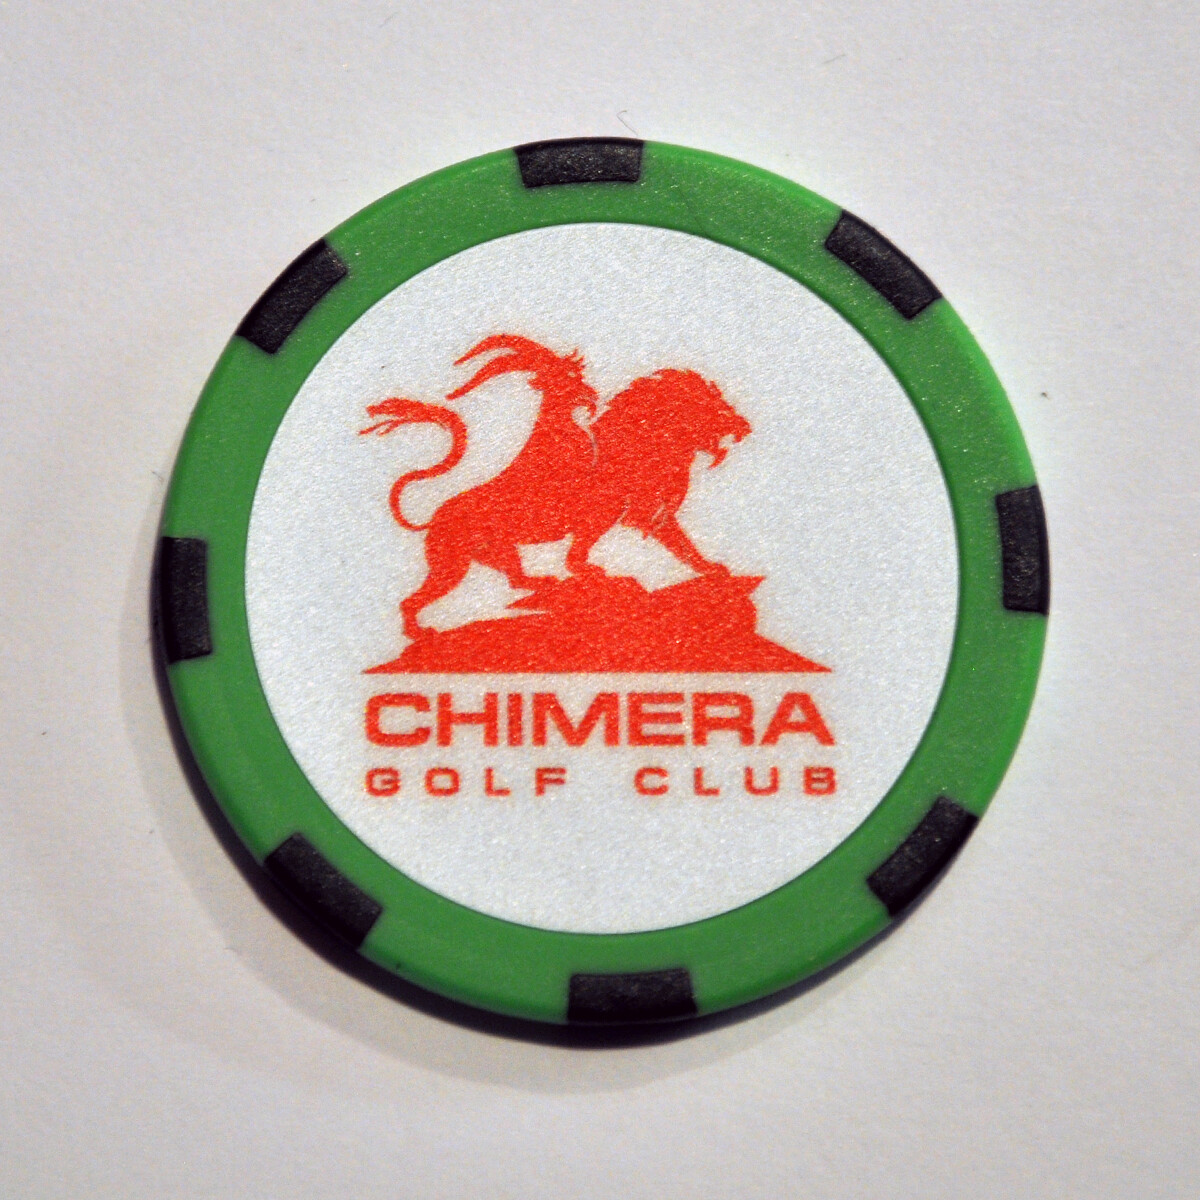 Poker Chip - Chimera - Green/Black